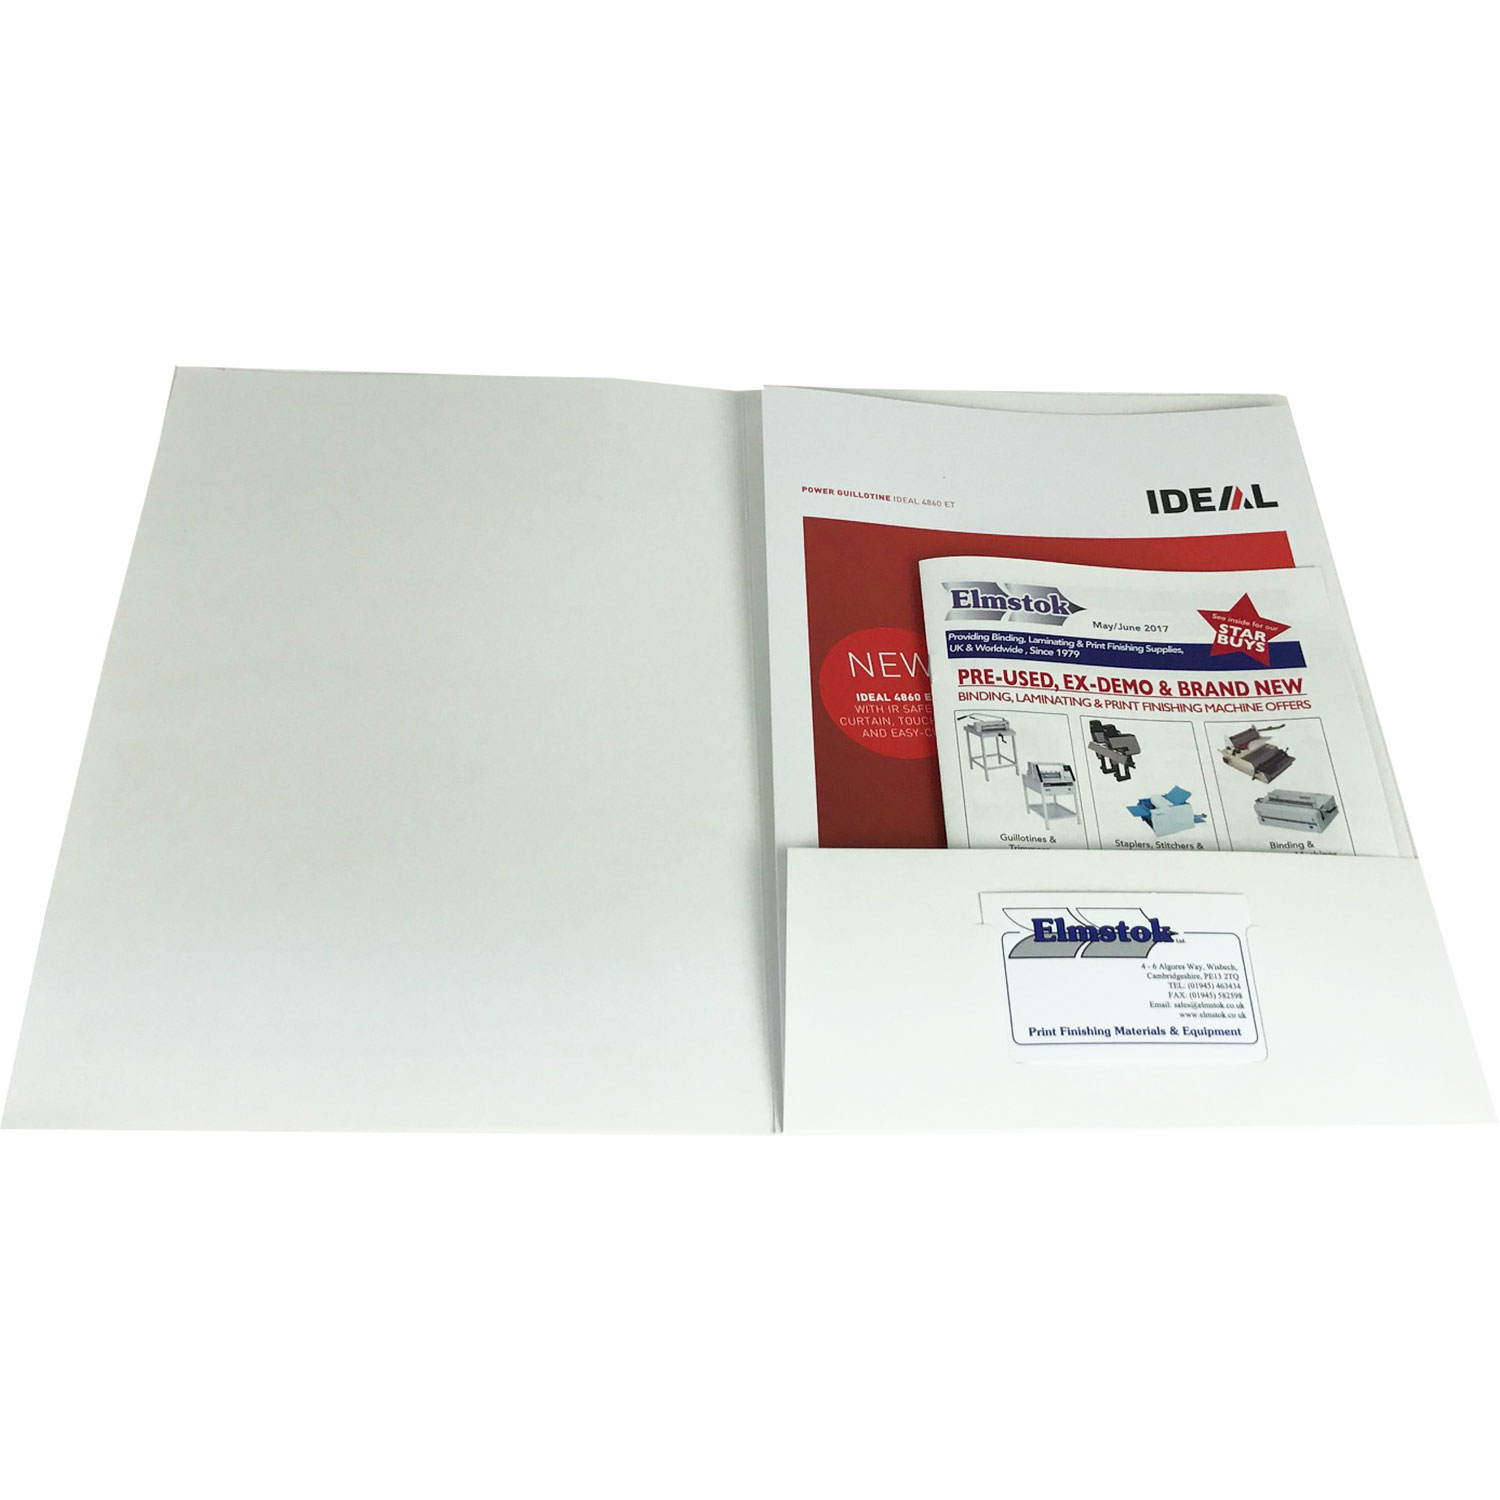 Customise-It folders can hold up to 20 sheets including a business card holder